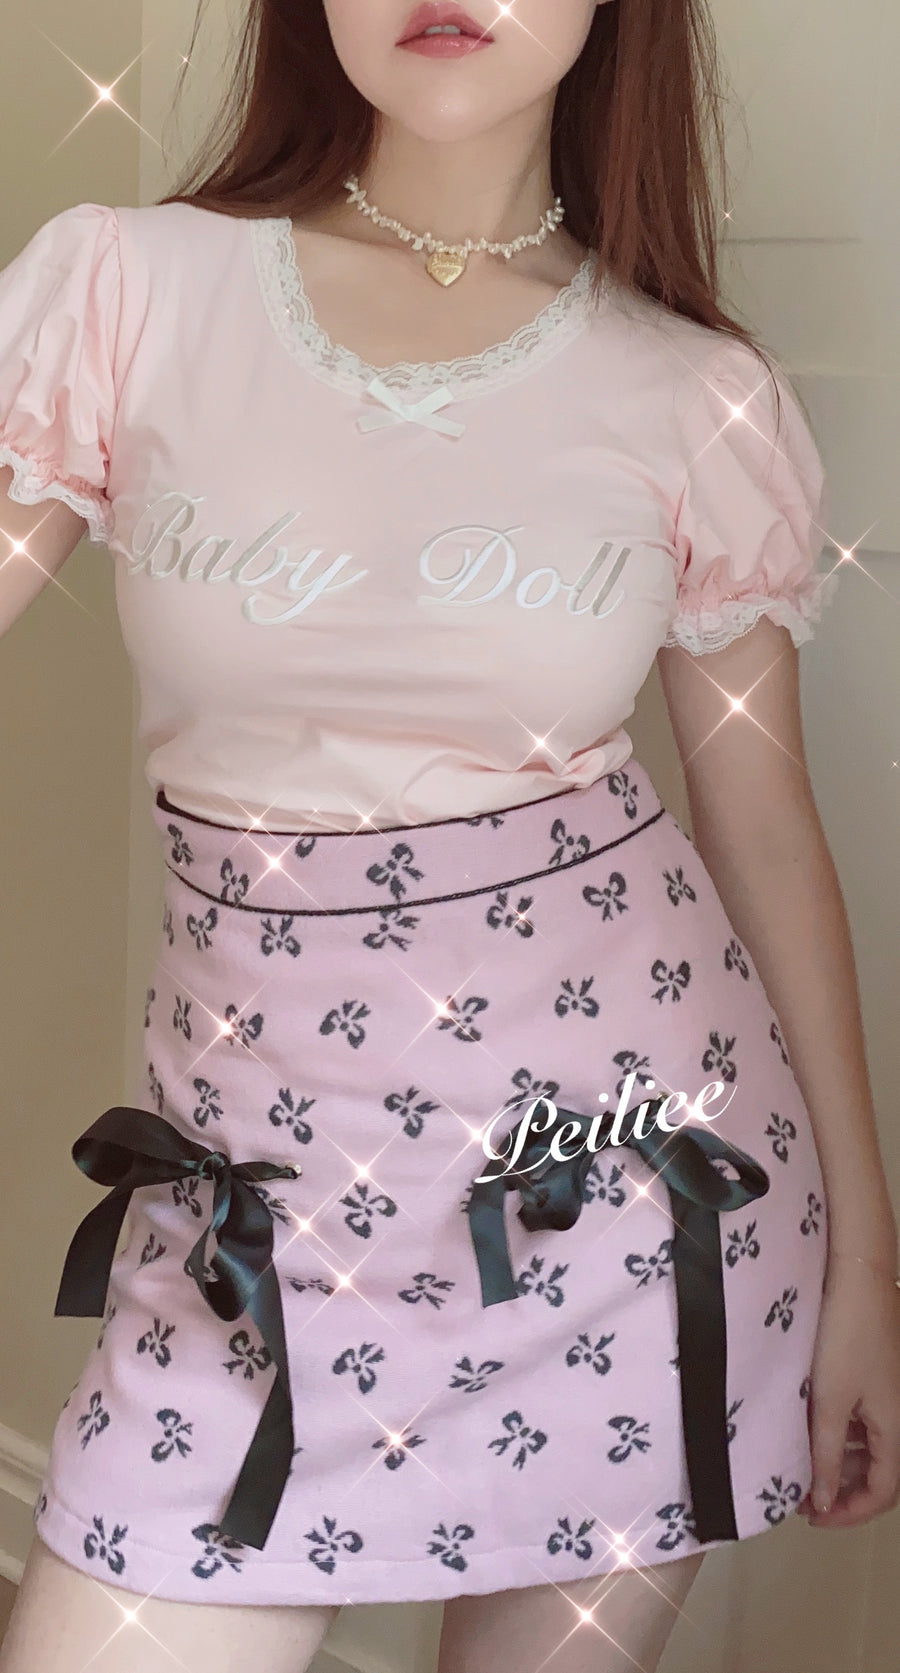 [Exclusive to PeilieeShop] Sweet Doll Pastel Pink Double Ribbon Mini Skirt - Peiliee Shop